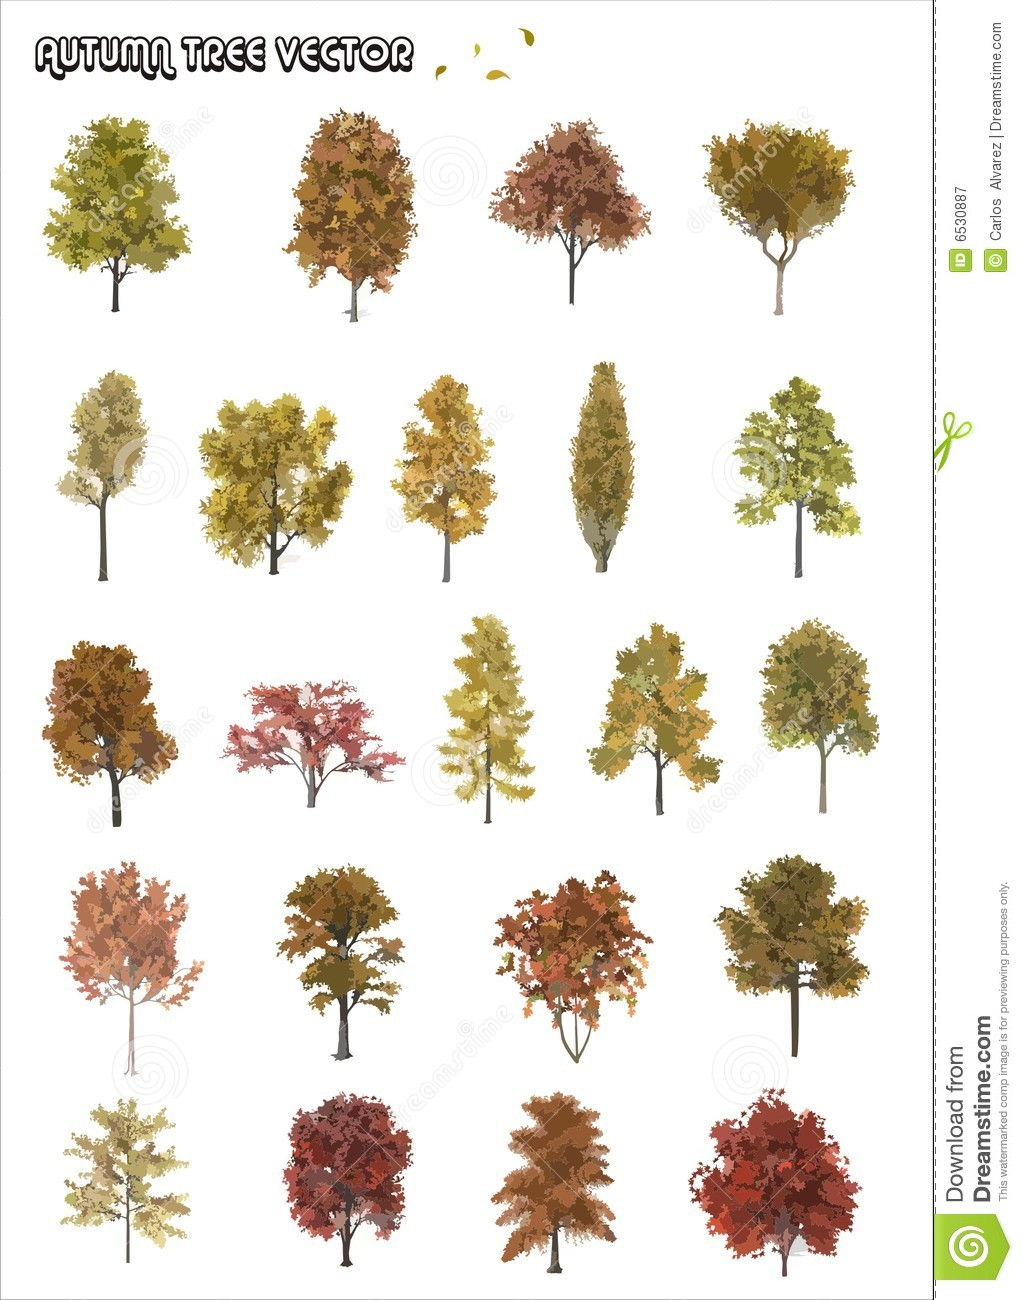 Tree shapes illustration composition over a white background